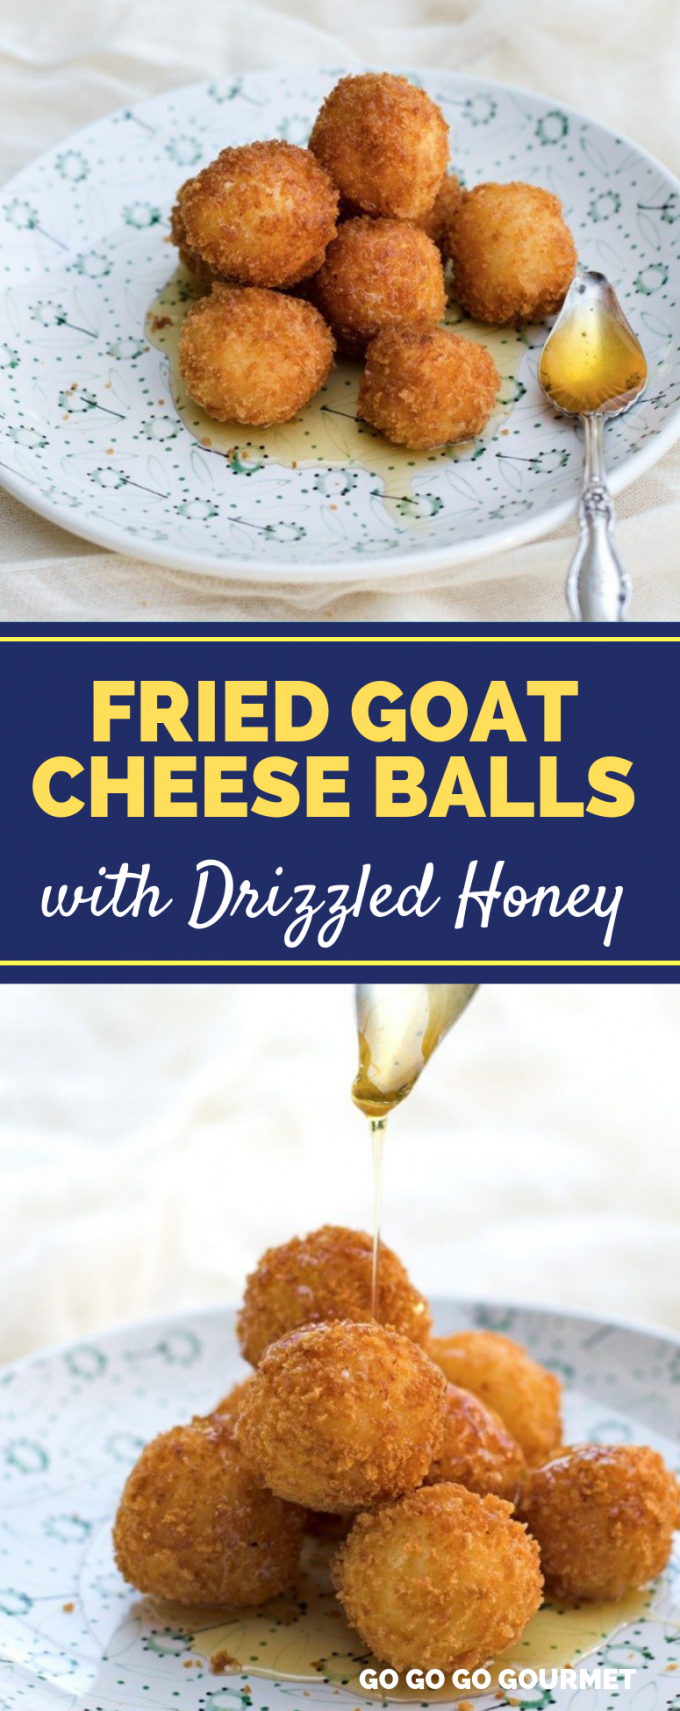 These easy Fried Goat Cheese Balls with Honey make the best appetizers. You can't beat that crispy outside and soft, melty cheese inside! They would even be a great topping for a summer salad! #gogogogourmet #friedgoatcheeseballs #friedgoatcheese #easyappetizers #summerappetizers via @gogogogourmet